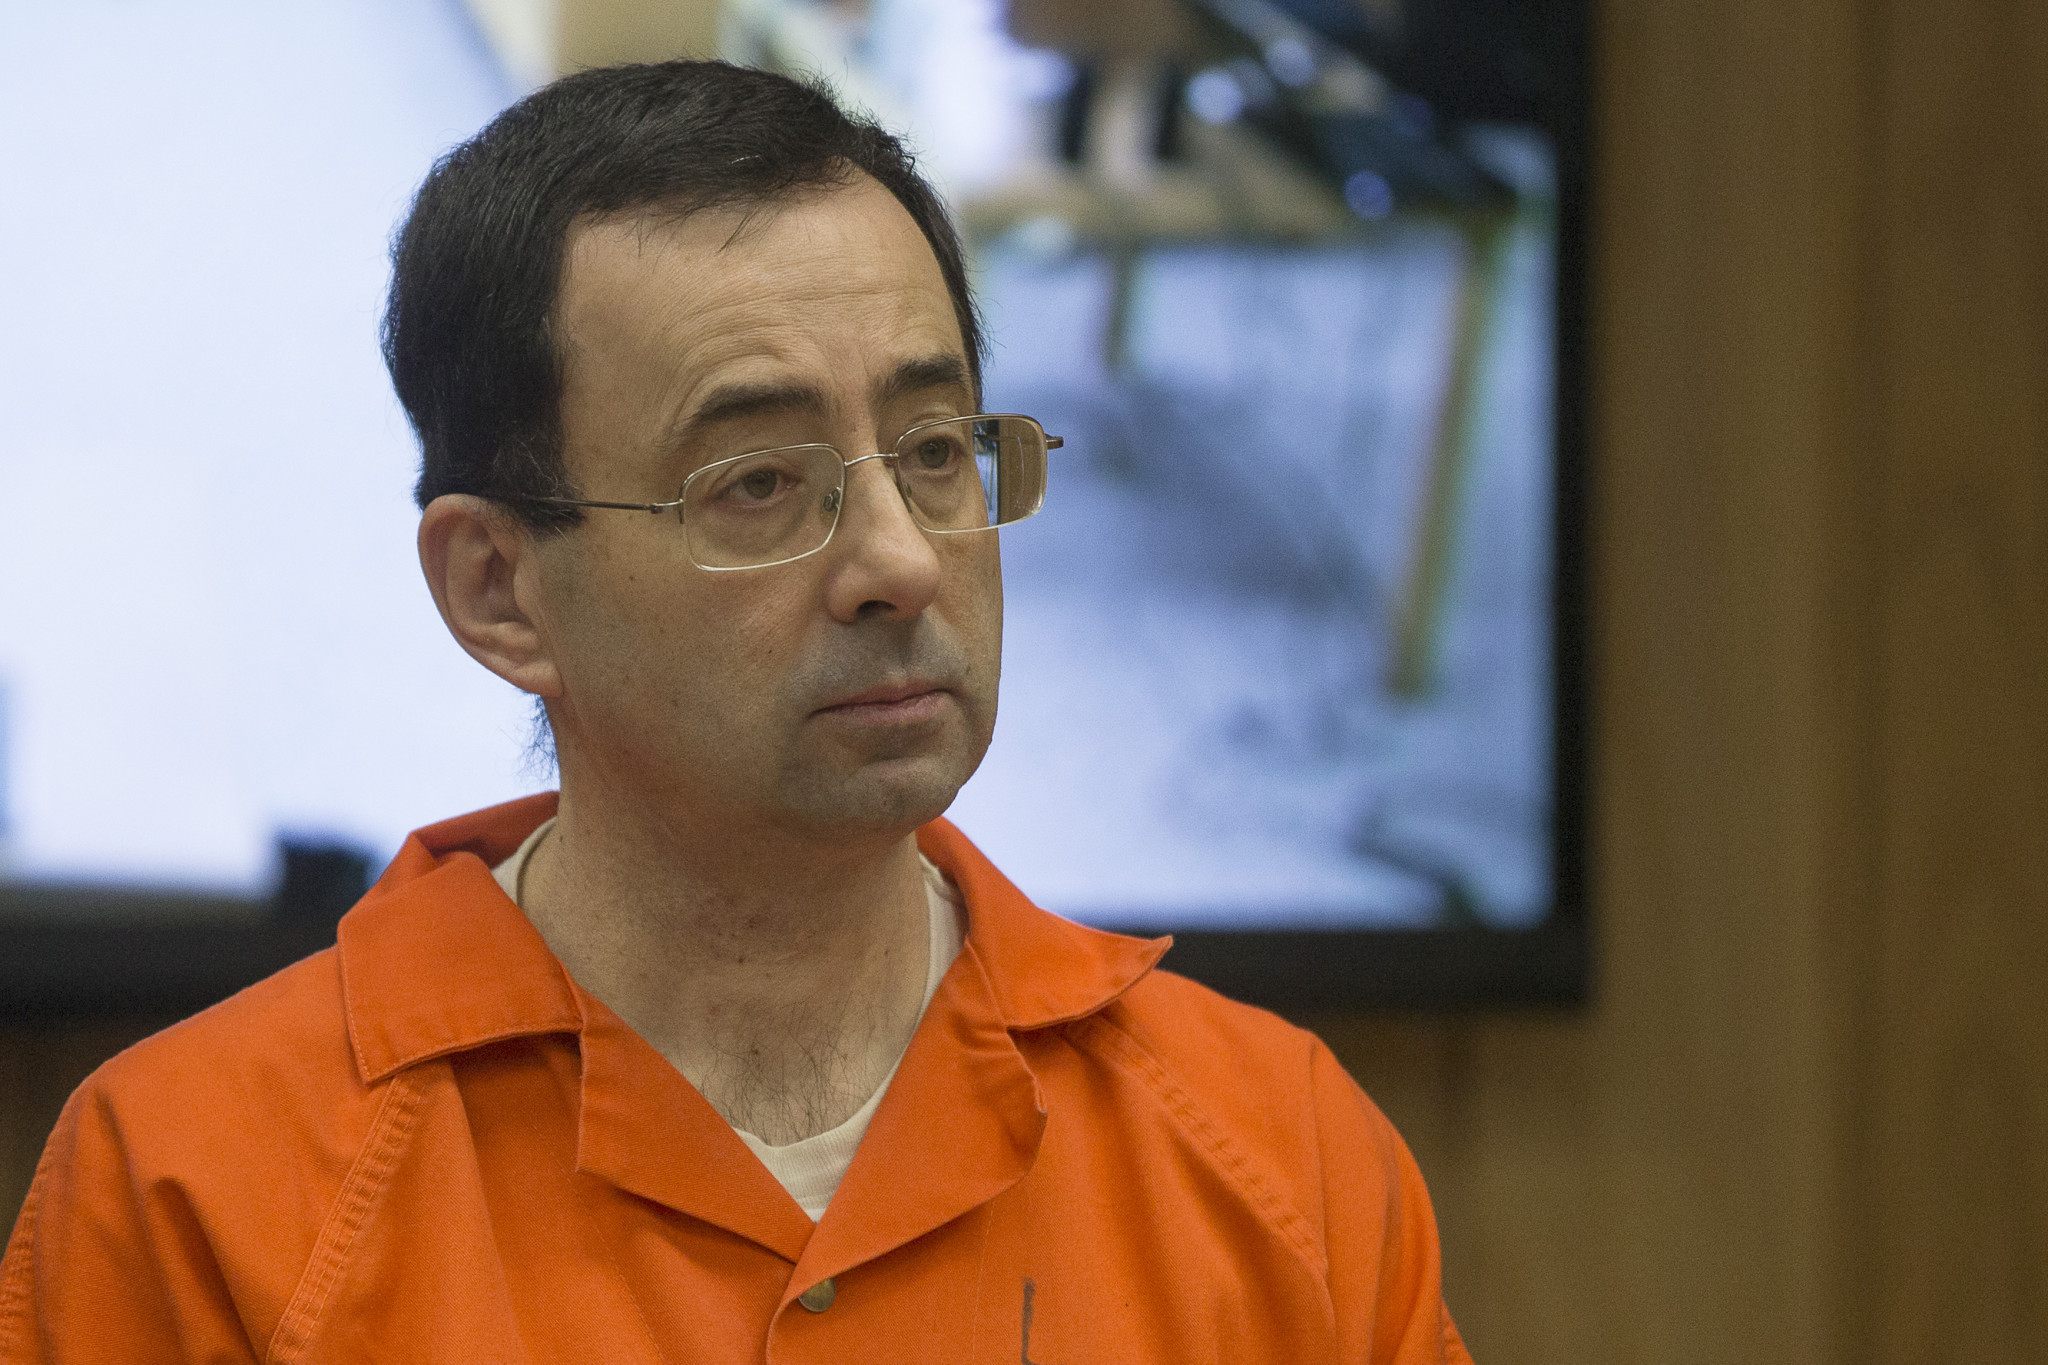 Larry Nassar was found guilty of sexually abusing dozens of American gymnasts under the guise of medical treatment and is now serving up to 175 years in prison ©Getty Images